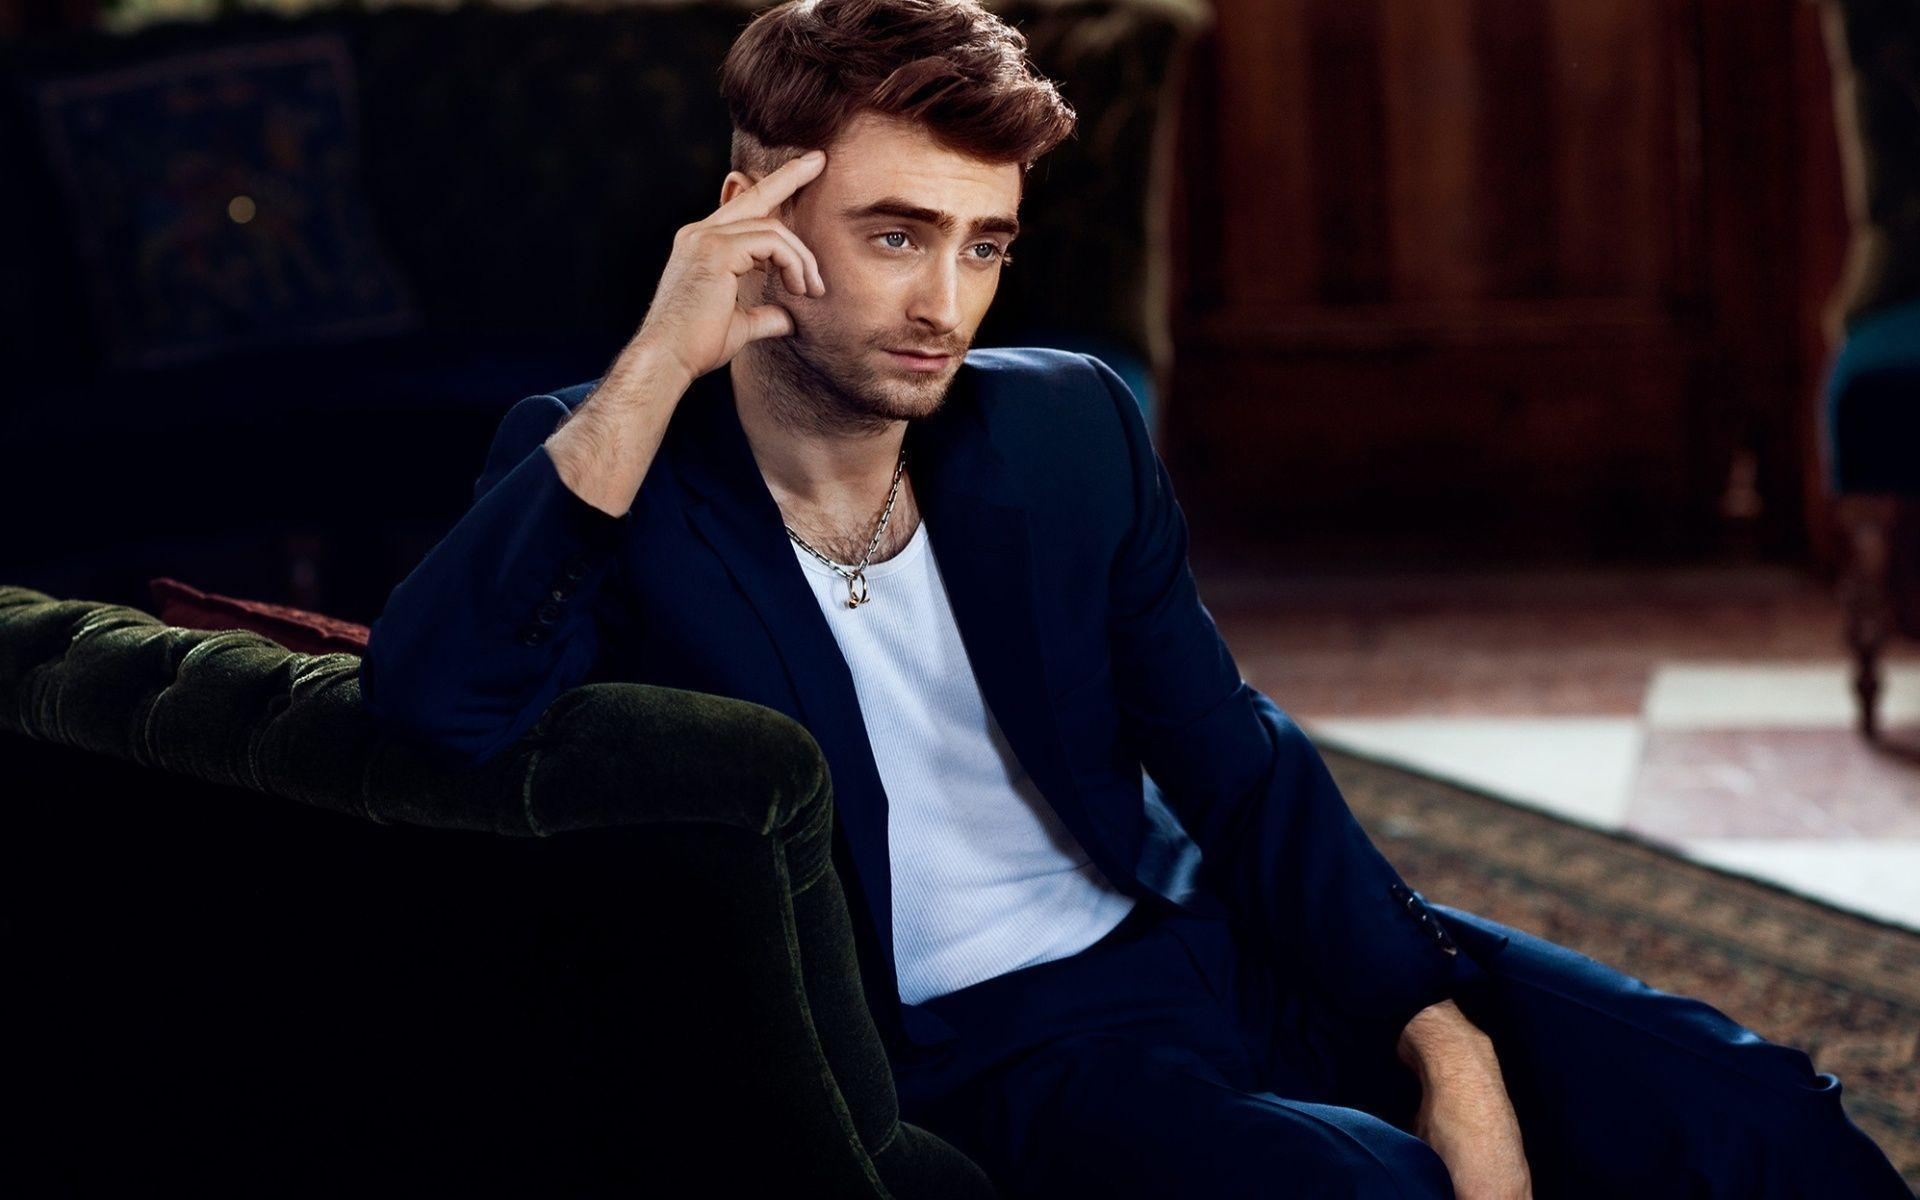 radcliffe hd wallpapers num2 - photo #26